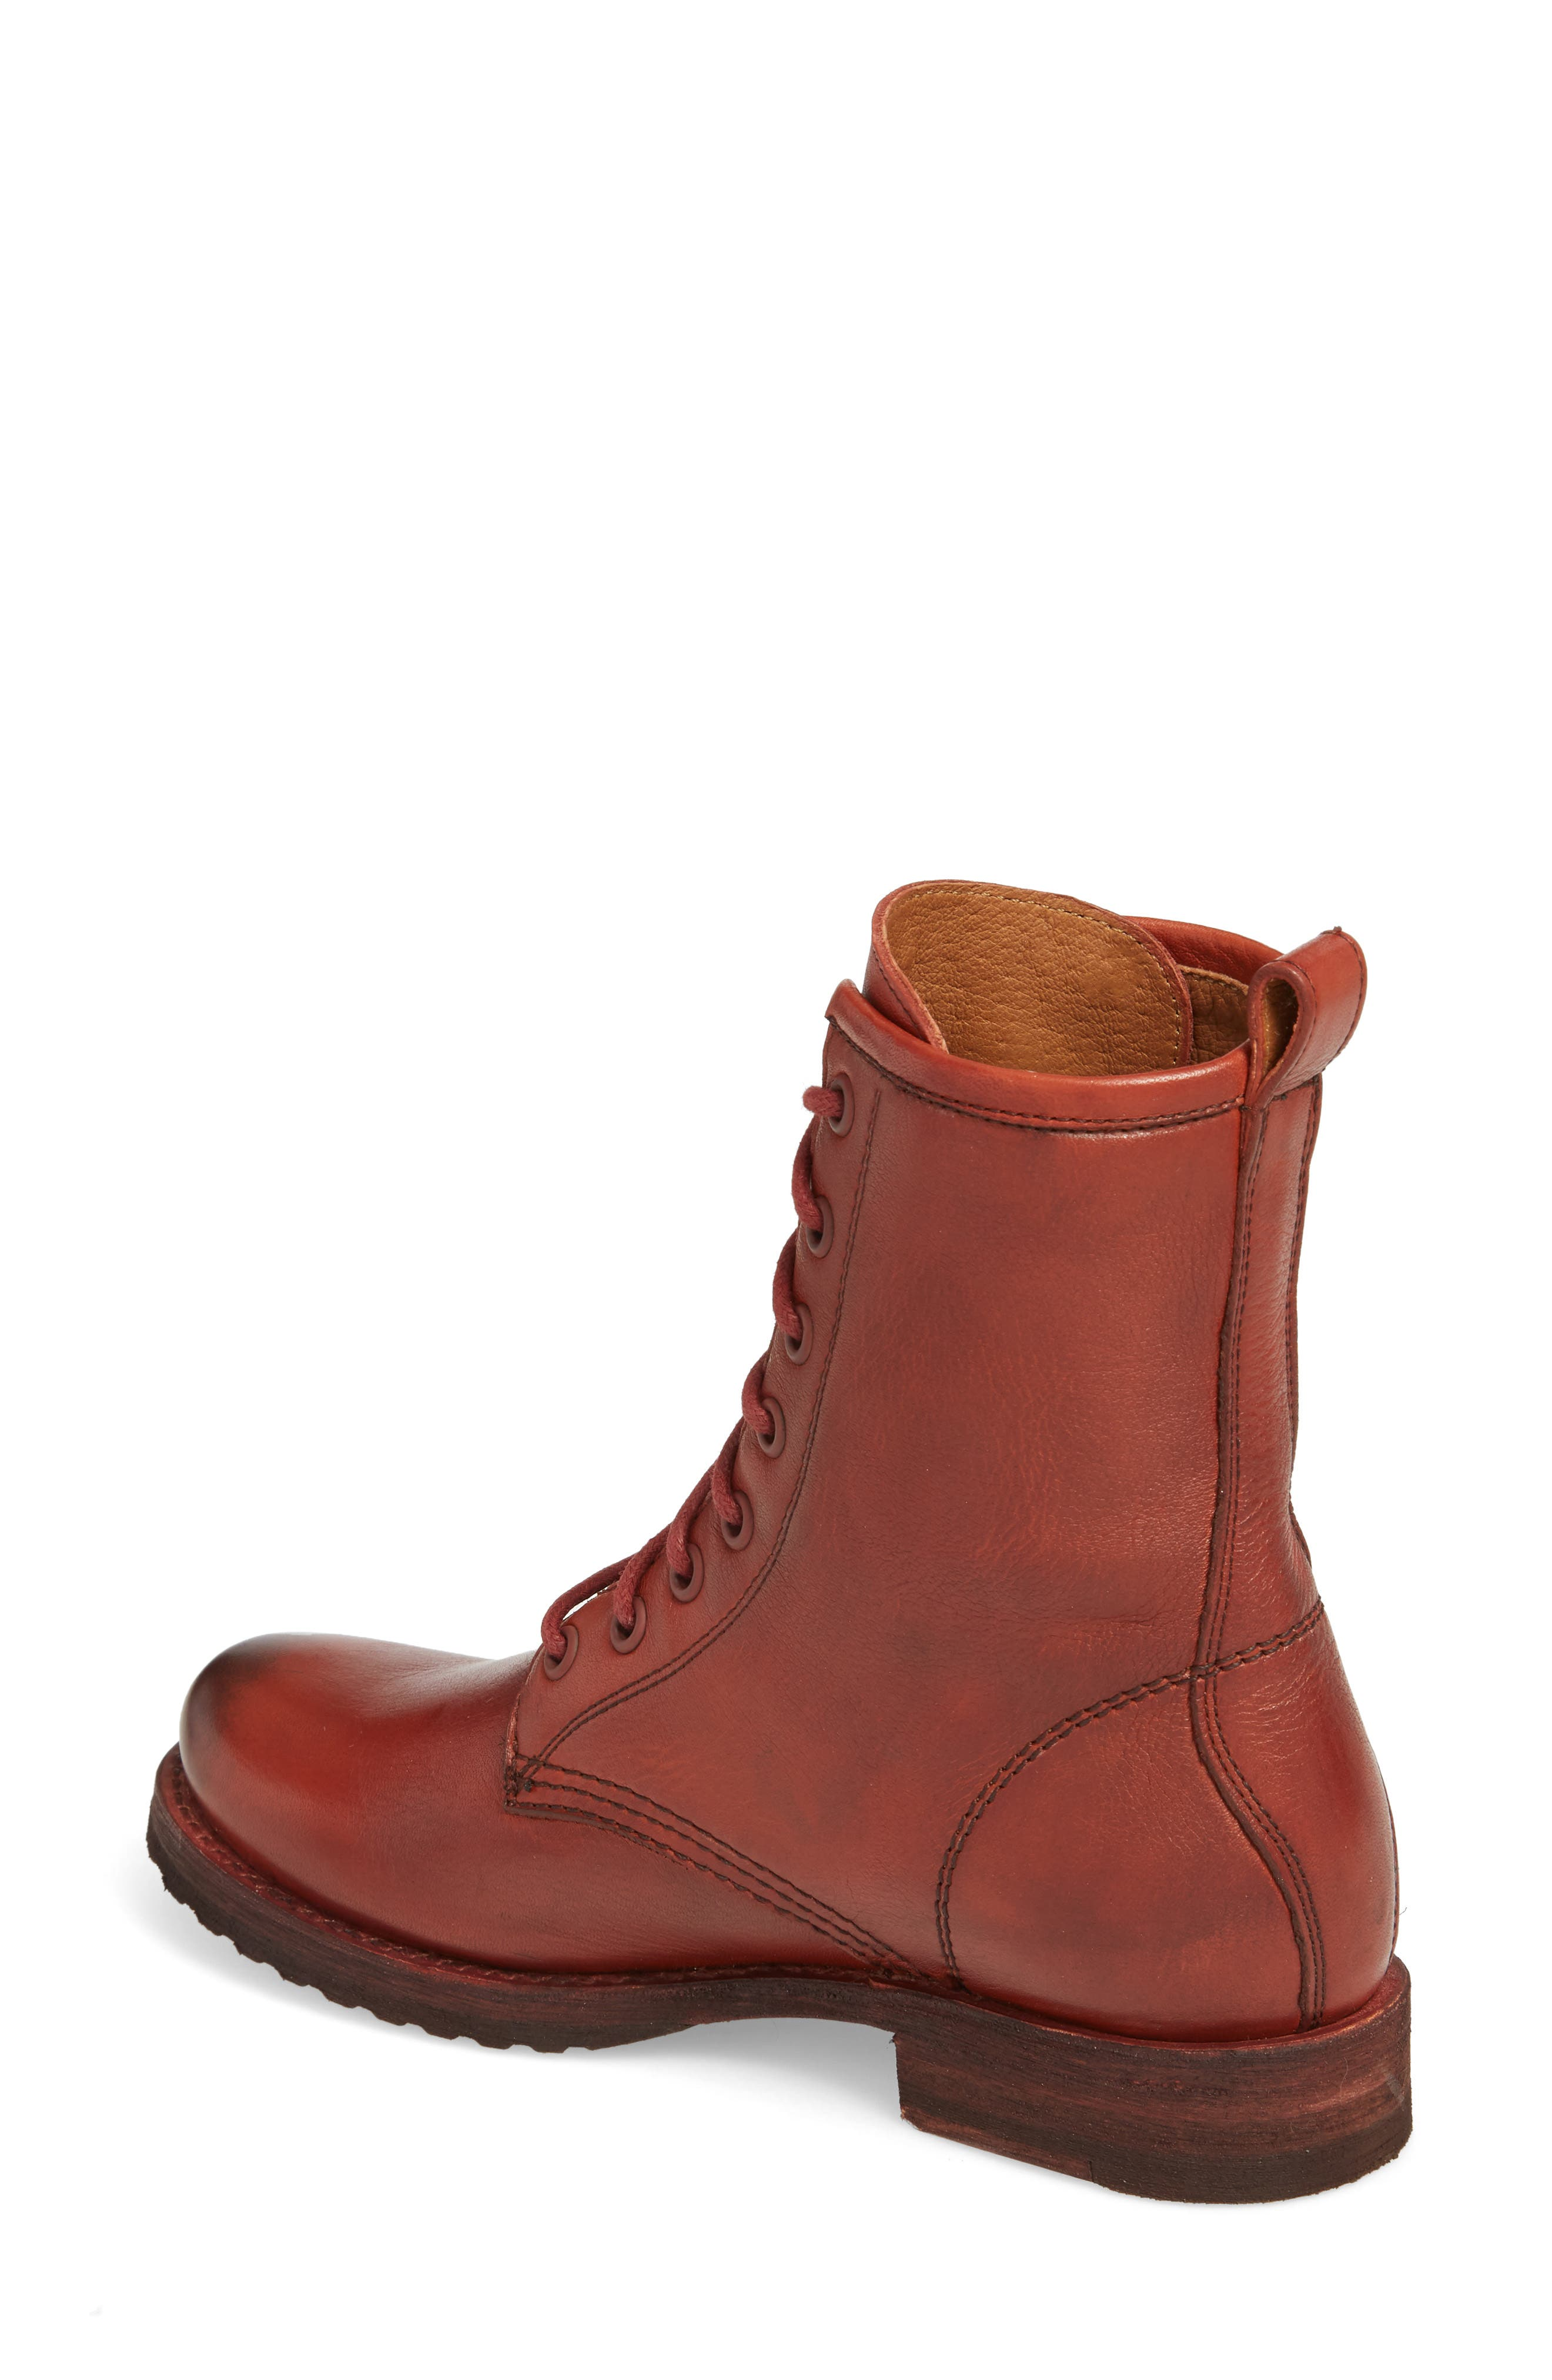 'Veronica Combat' Boot,                             Alternate thumbnail 2, color,                             Red Clay Leather